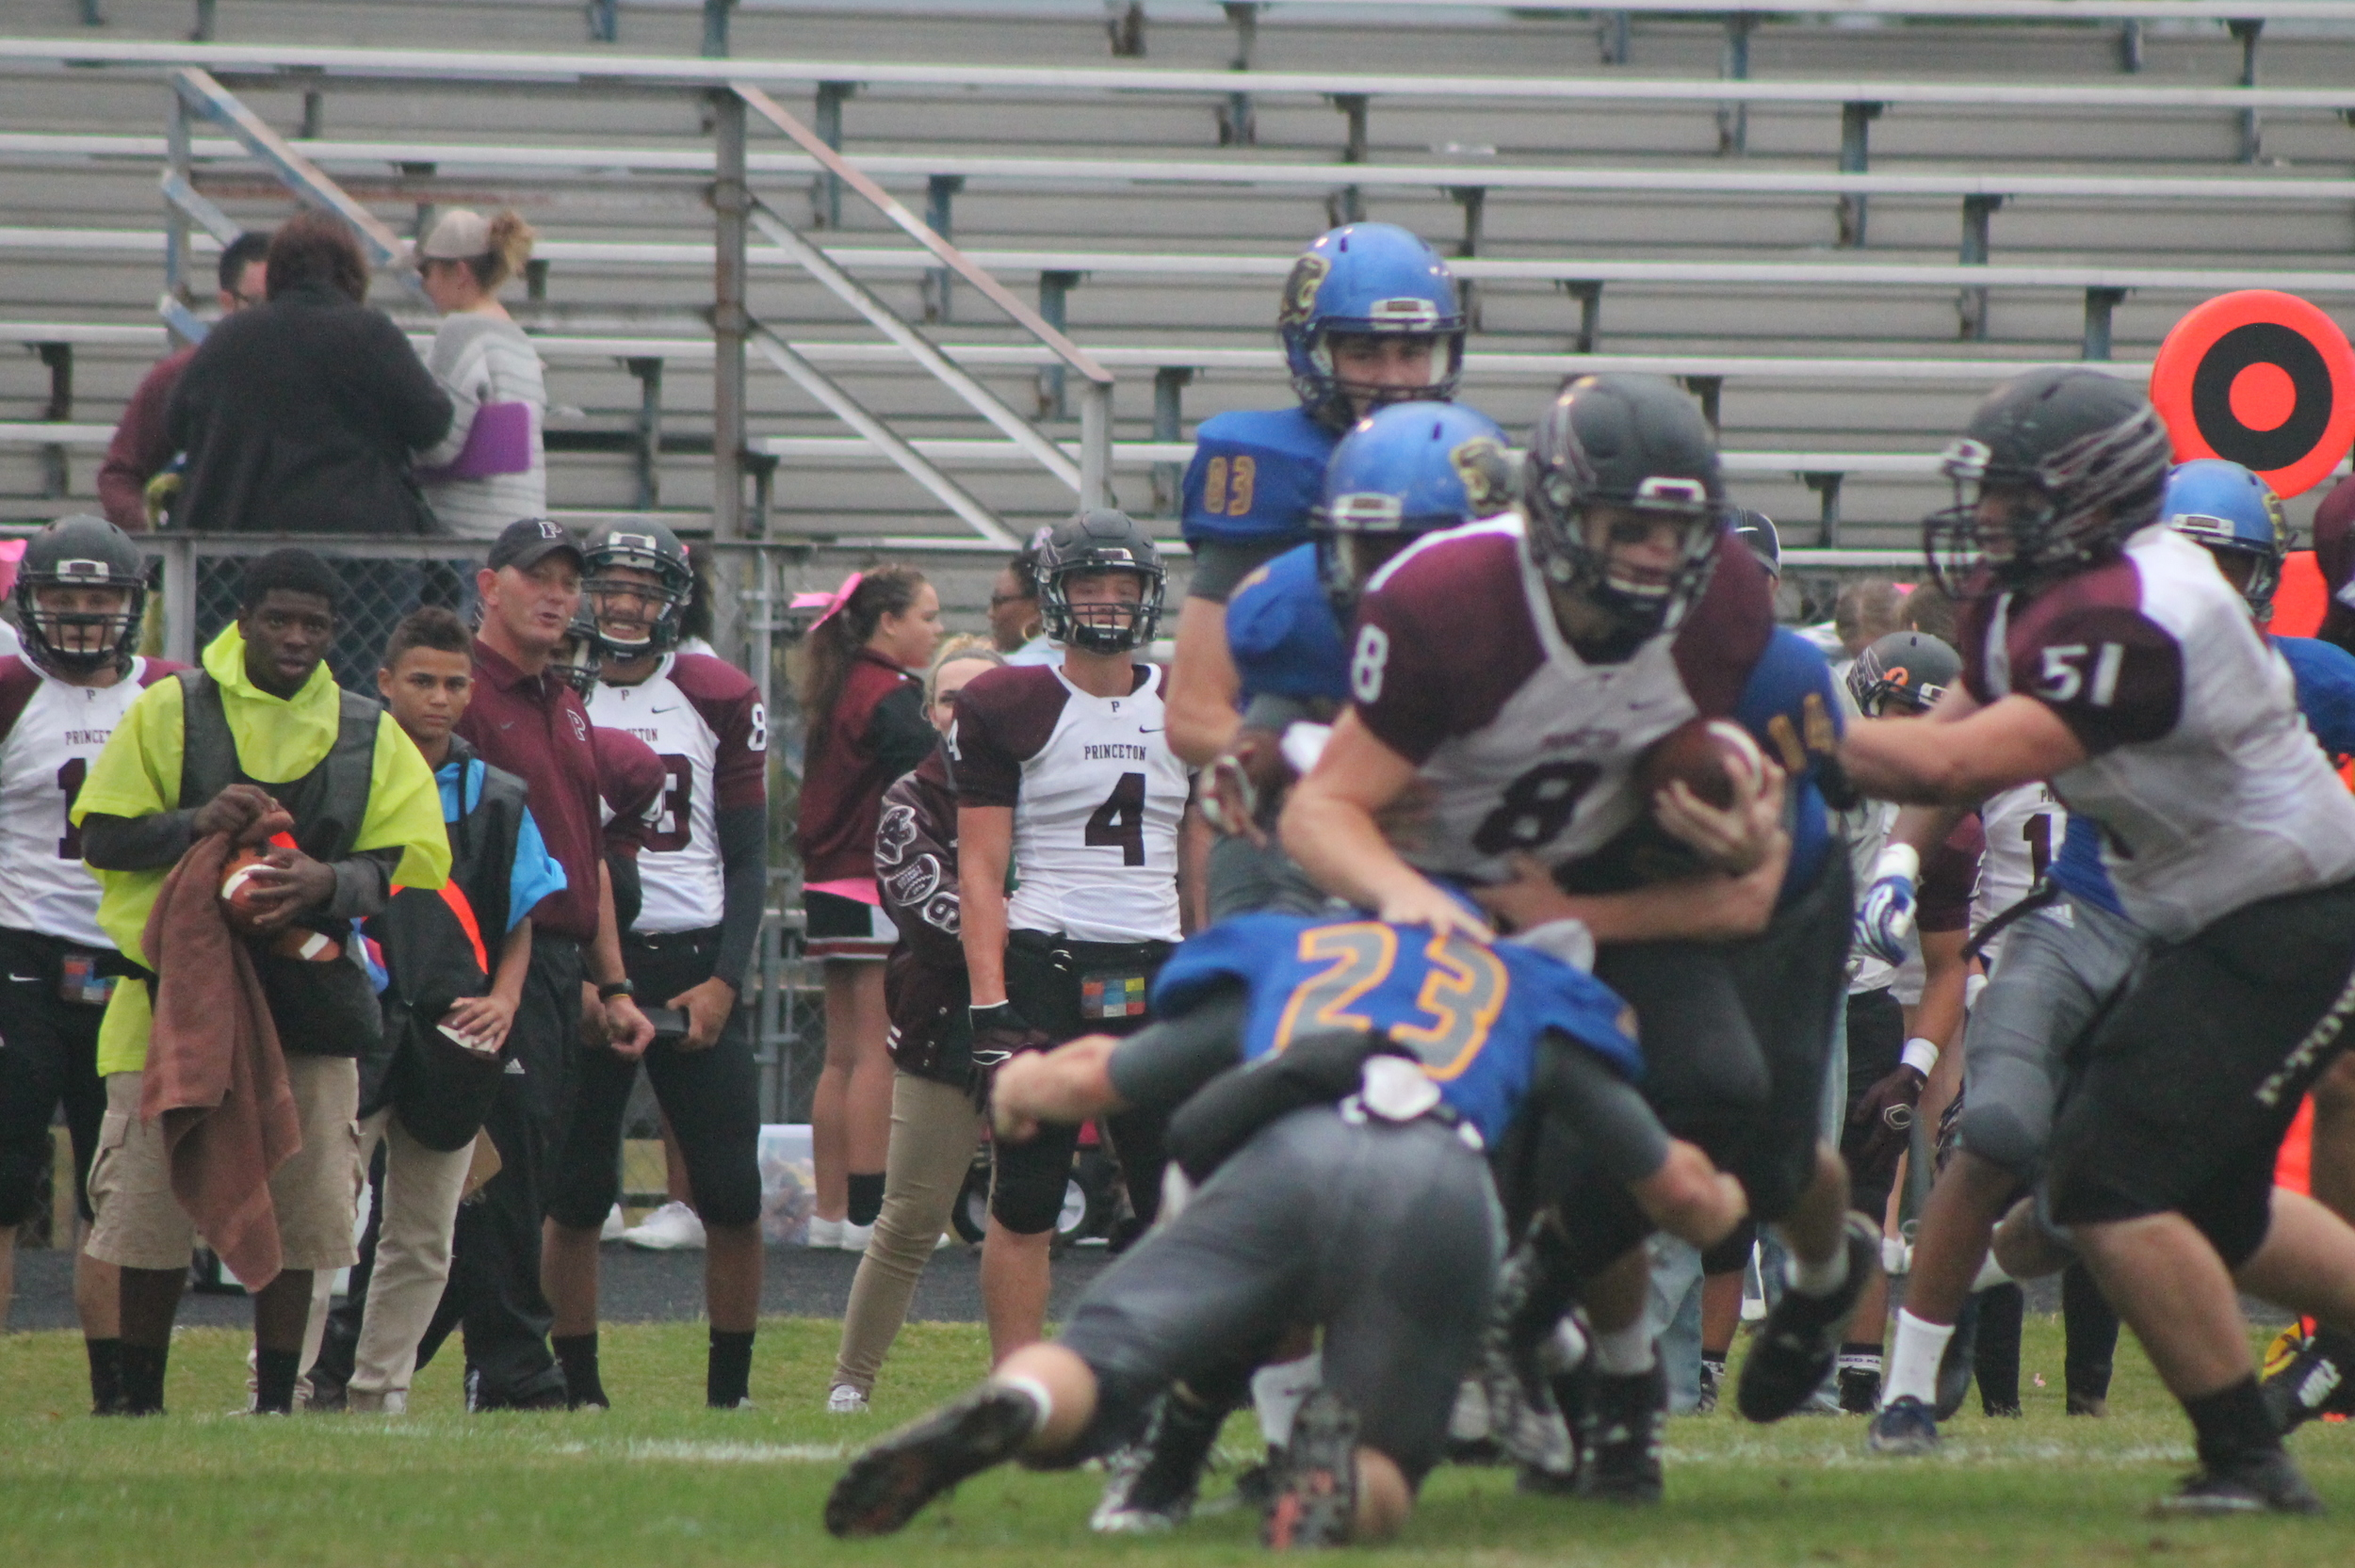 (Photo by Maddy Routon) Austin Exum (23) making a tackle on Princeton's quarterback.